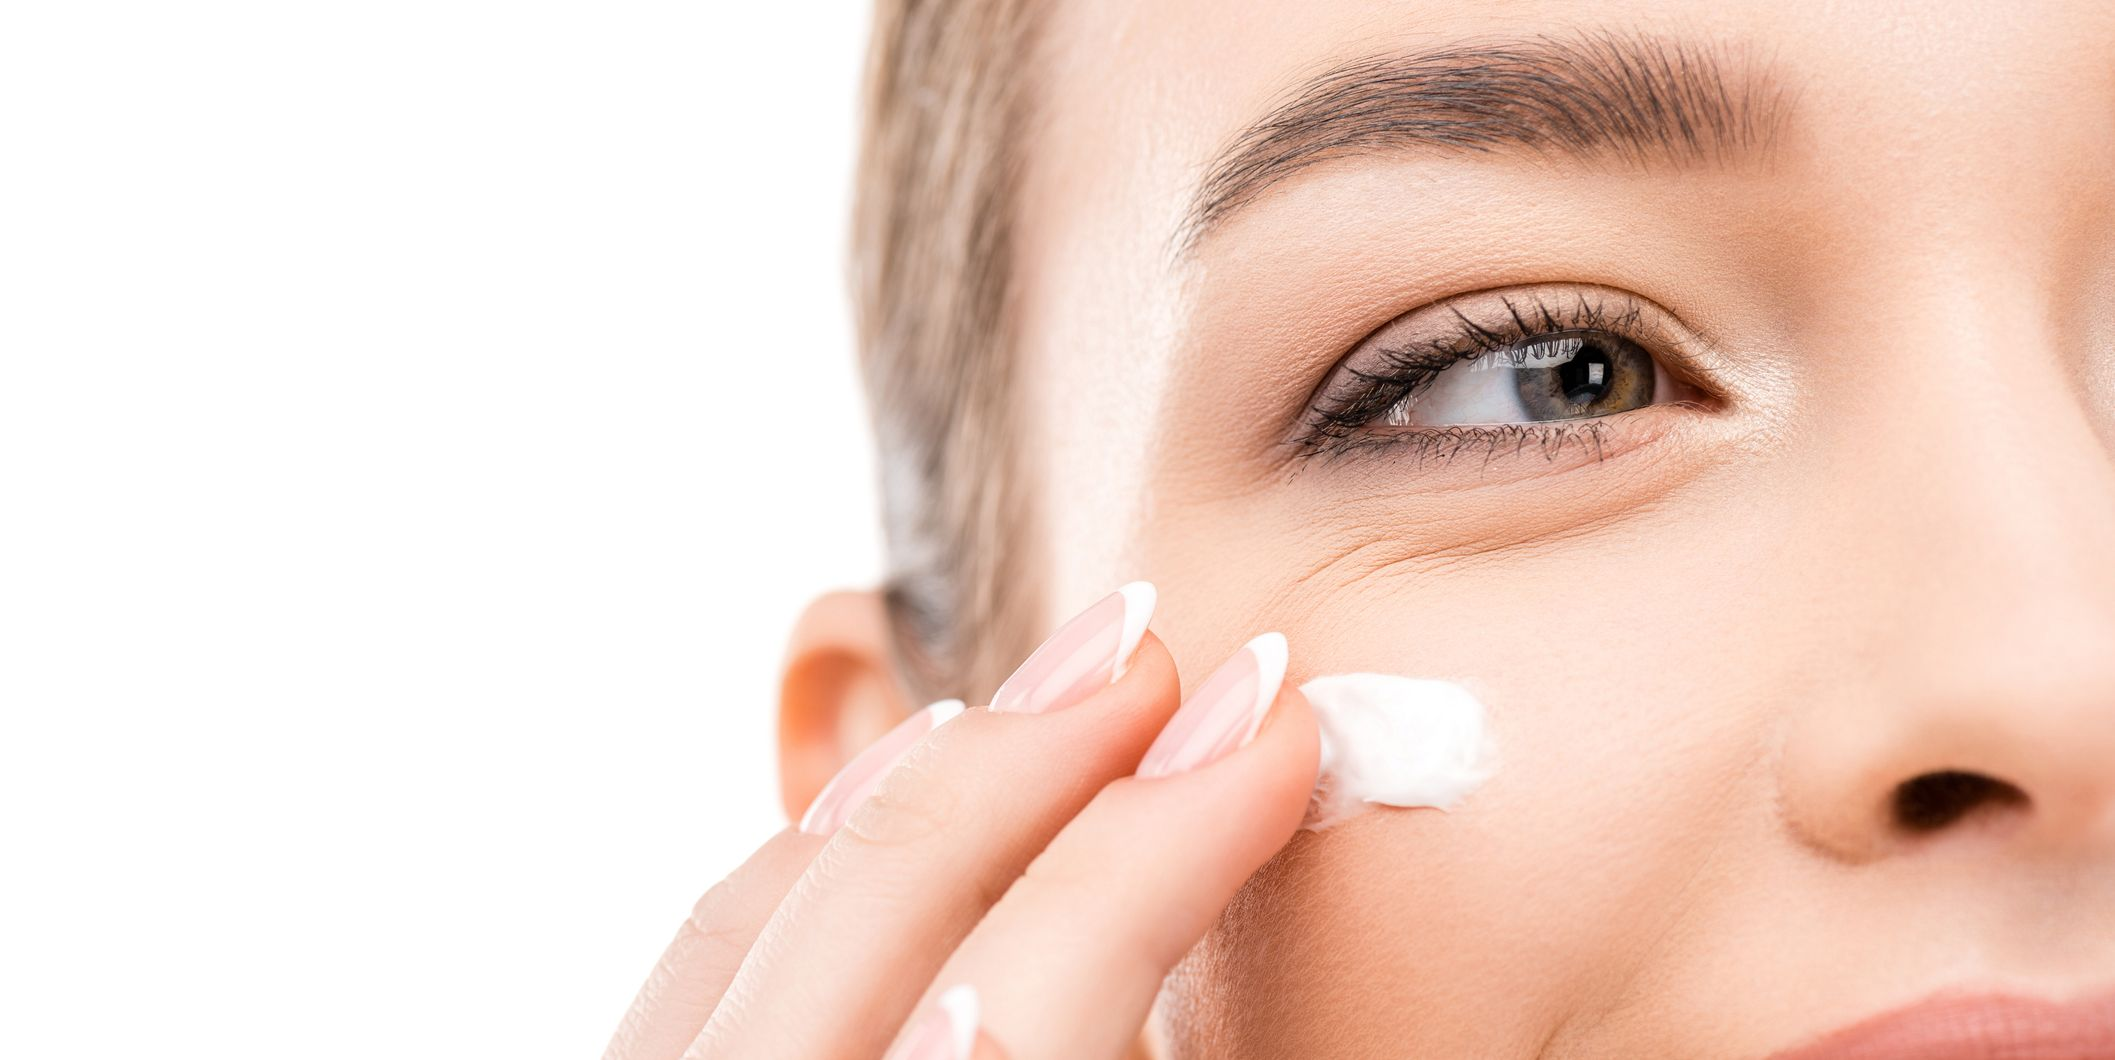 7 Best Moisturizers with SPF, According to Beauty Experts